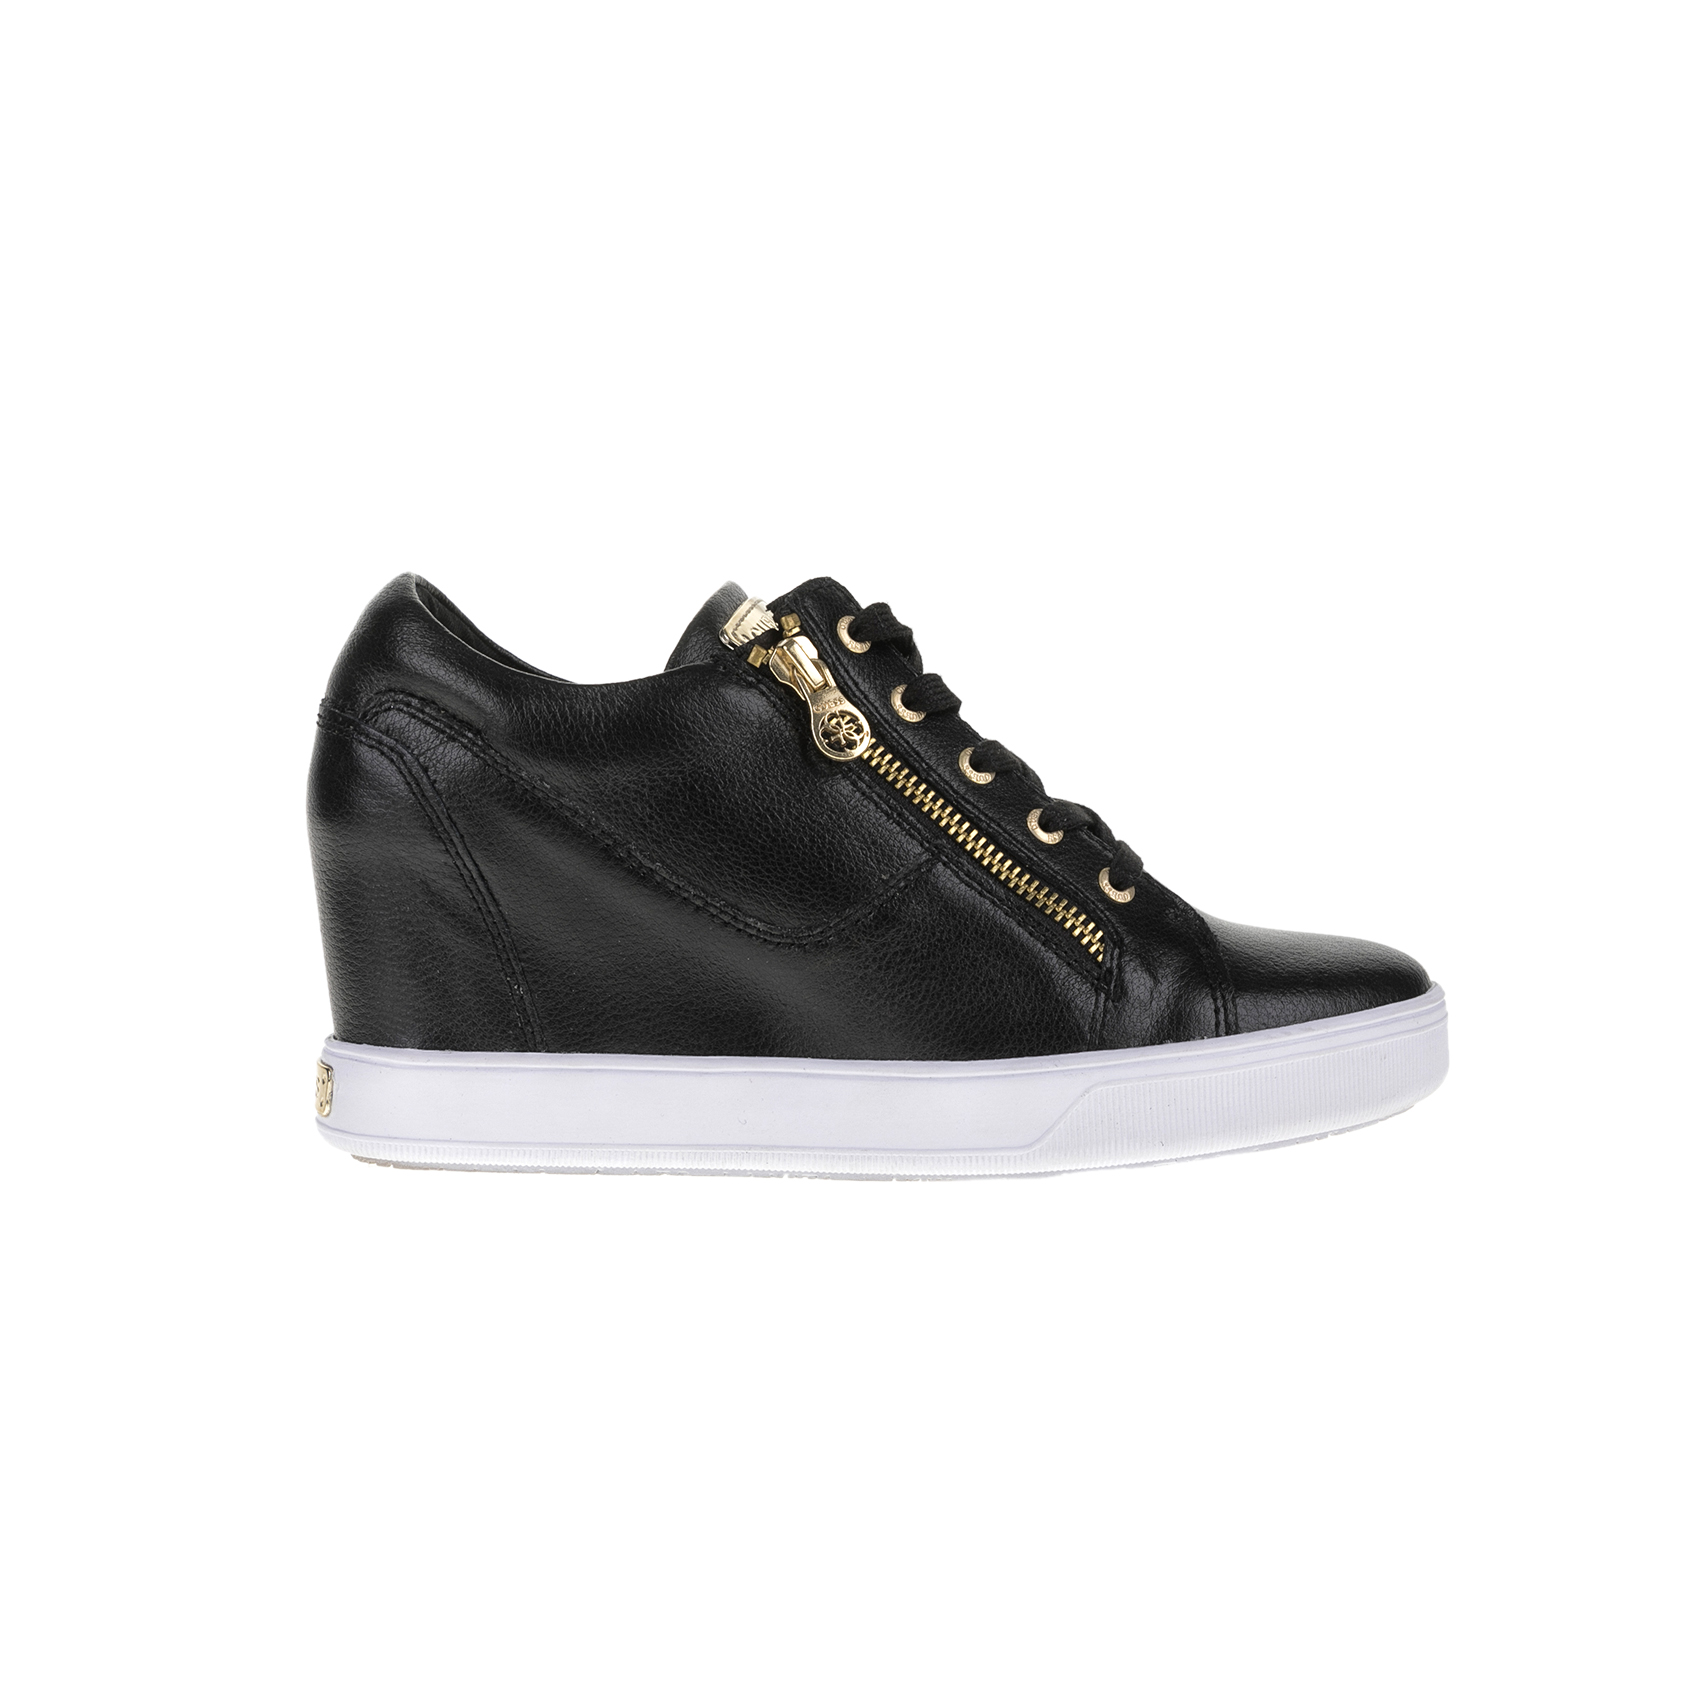 GUESS – Γυναικεία sneakers GUESS μαύρα